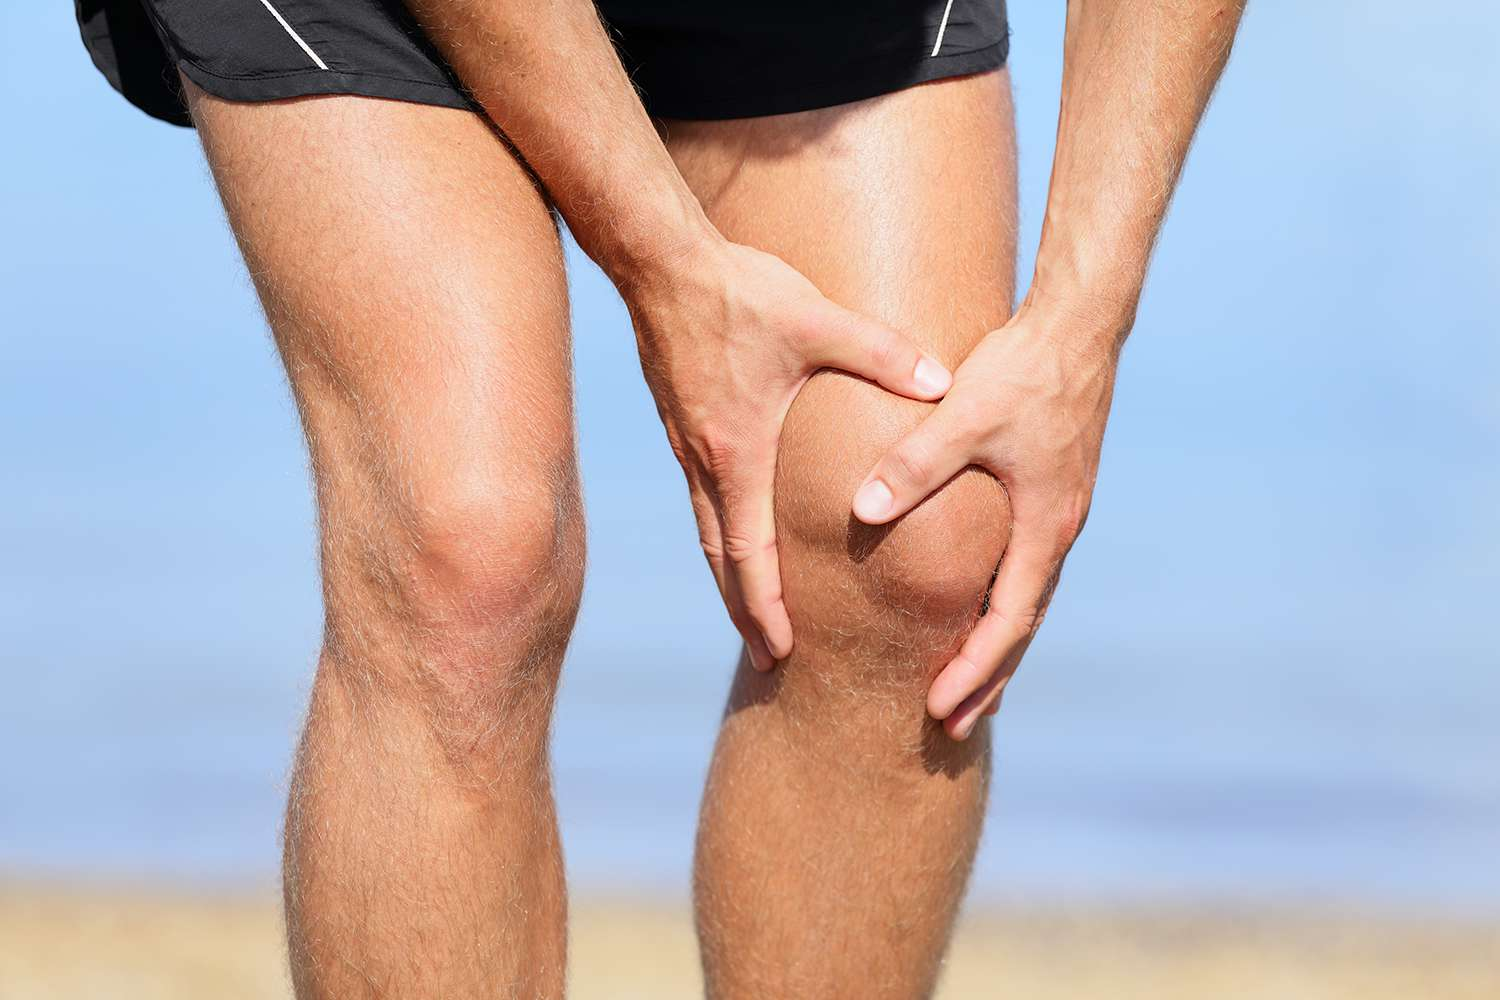 Types of Injuries or Pain